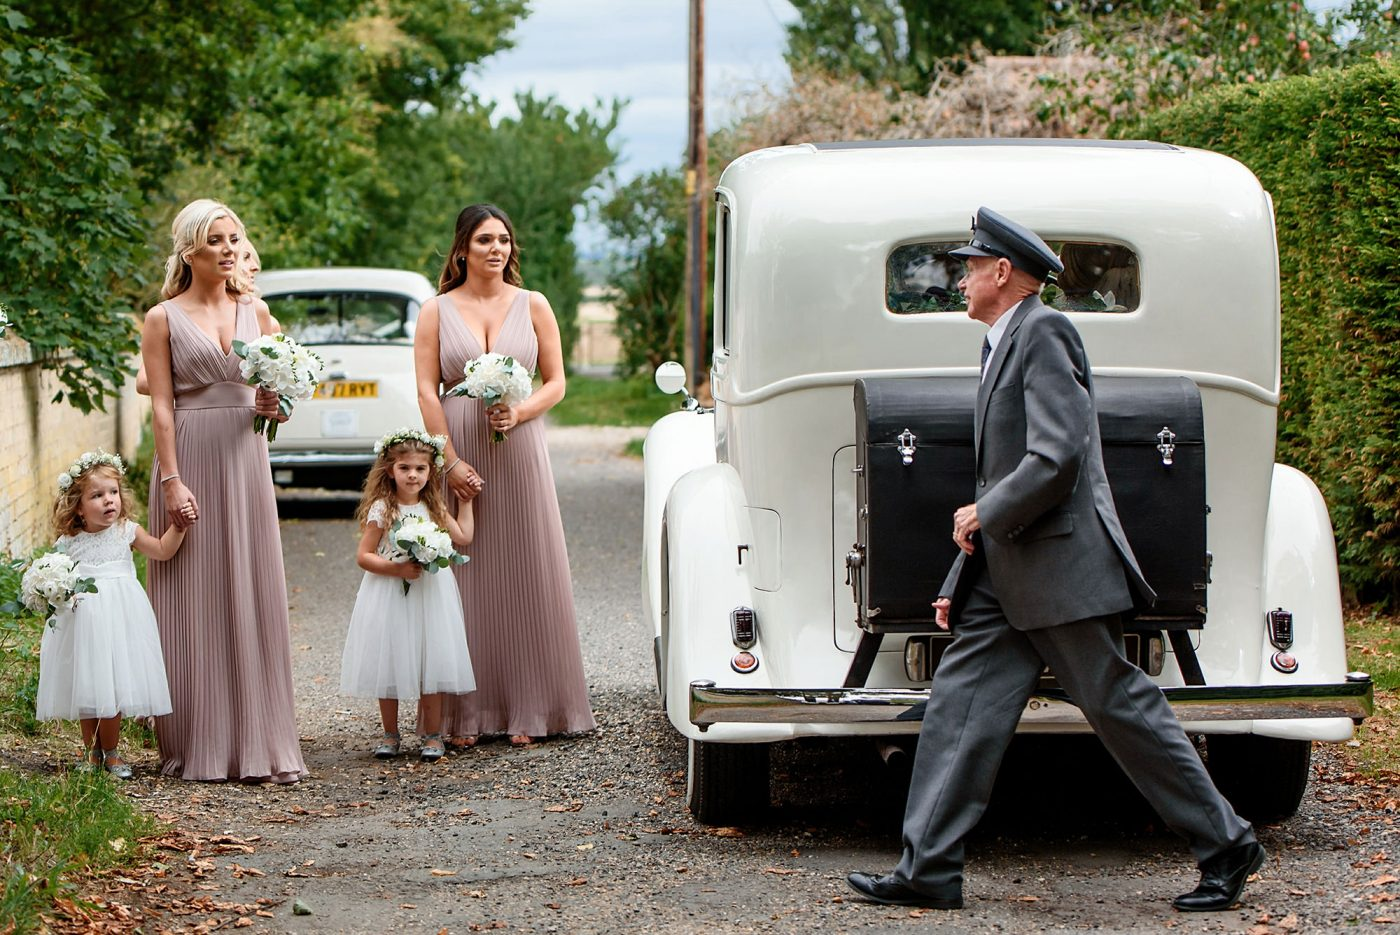 wedding party arrive in a classic white car